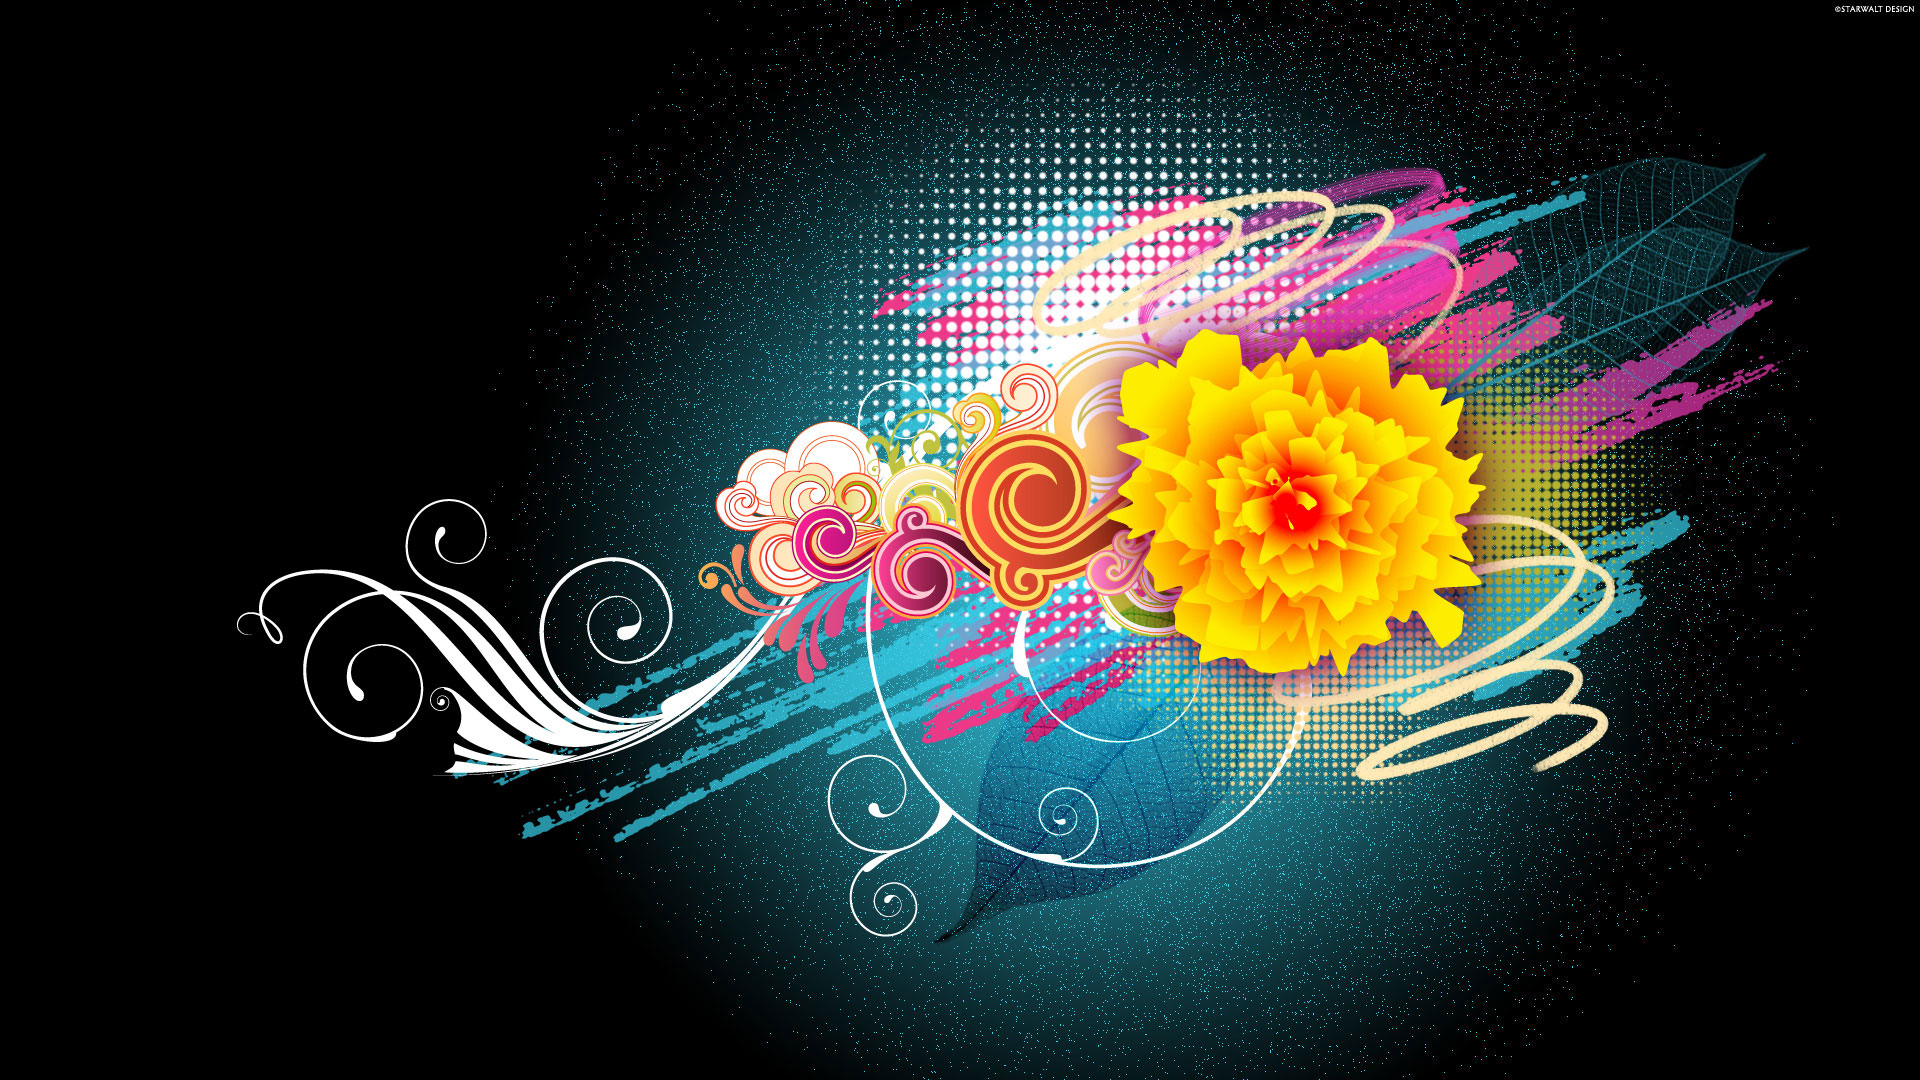 Flower Vector Designs 1080p Wallpapers HD Wallpapers 1920x1080